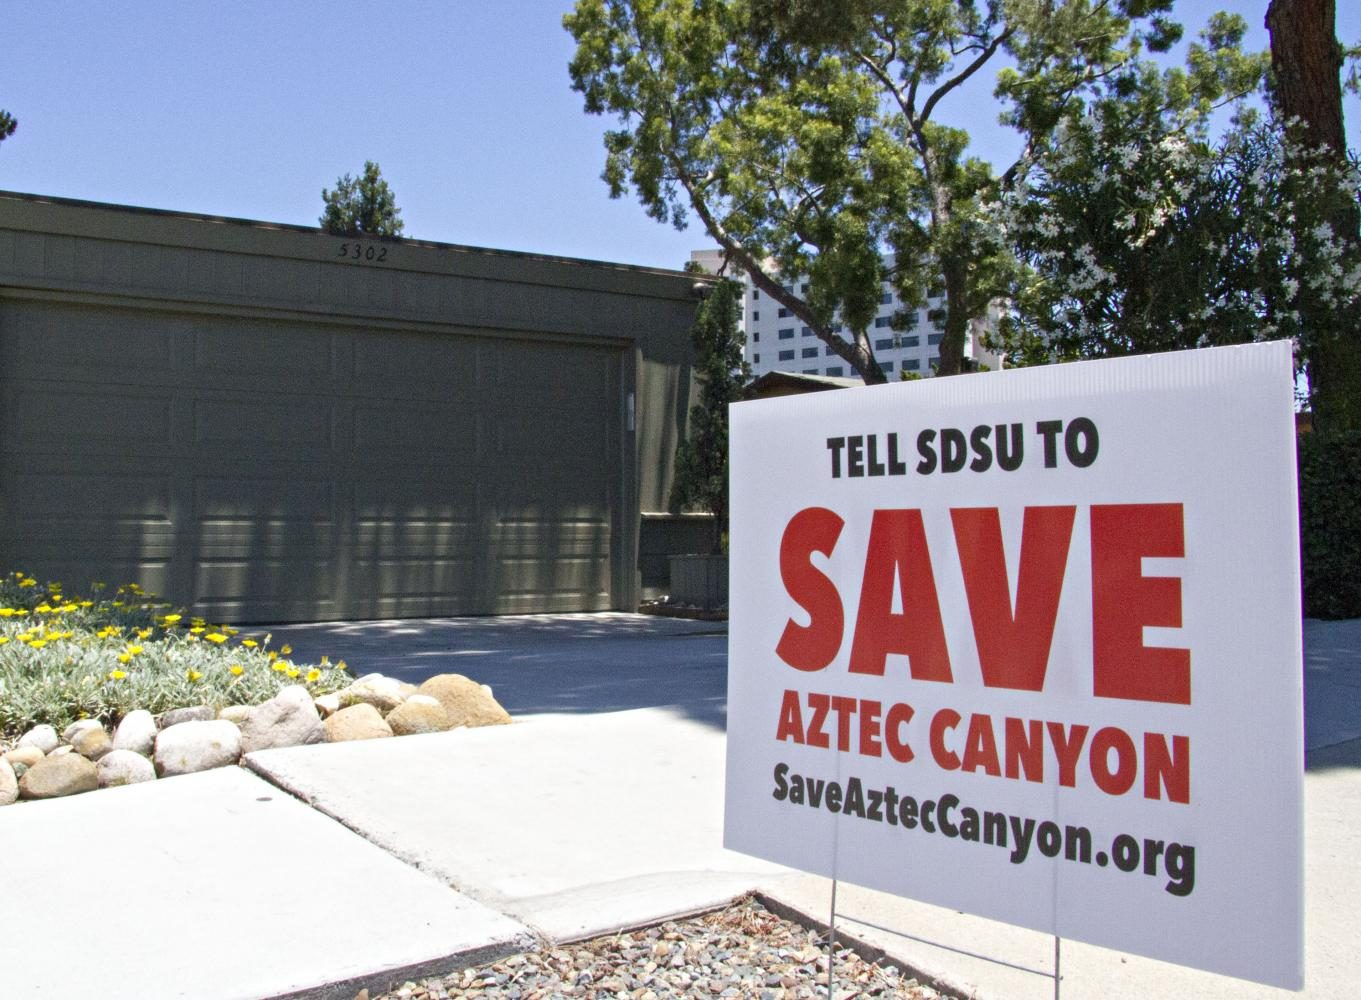 A+yard+sign+reading+%22Tell+SDSU+to+save+Aztec+Canyon%22+sits+in+front+of+a+green+house.+Chapultapec+Hall+is+visible+in+the+background.